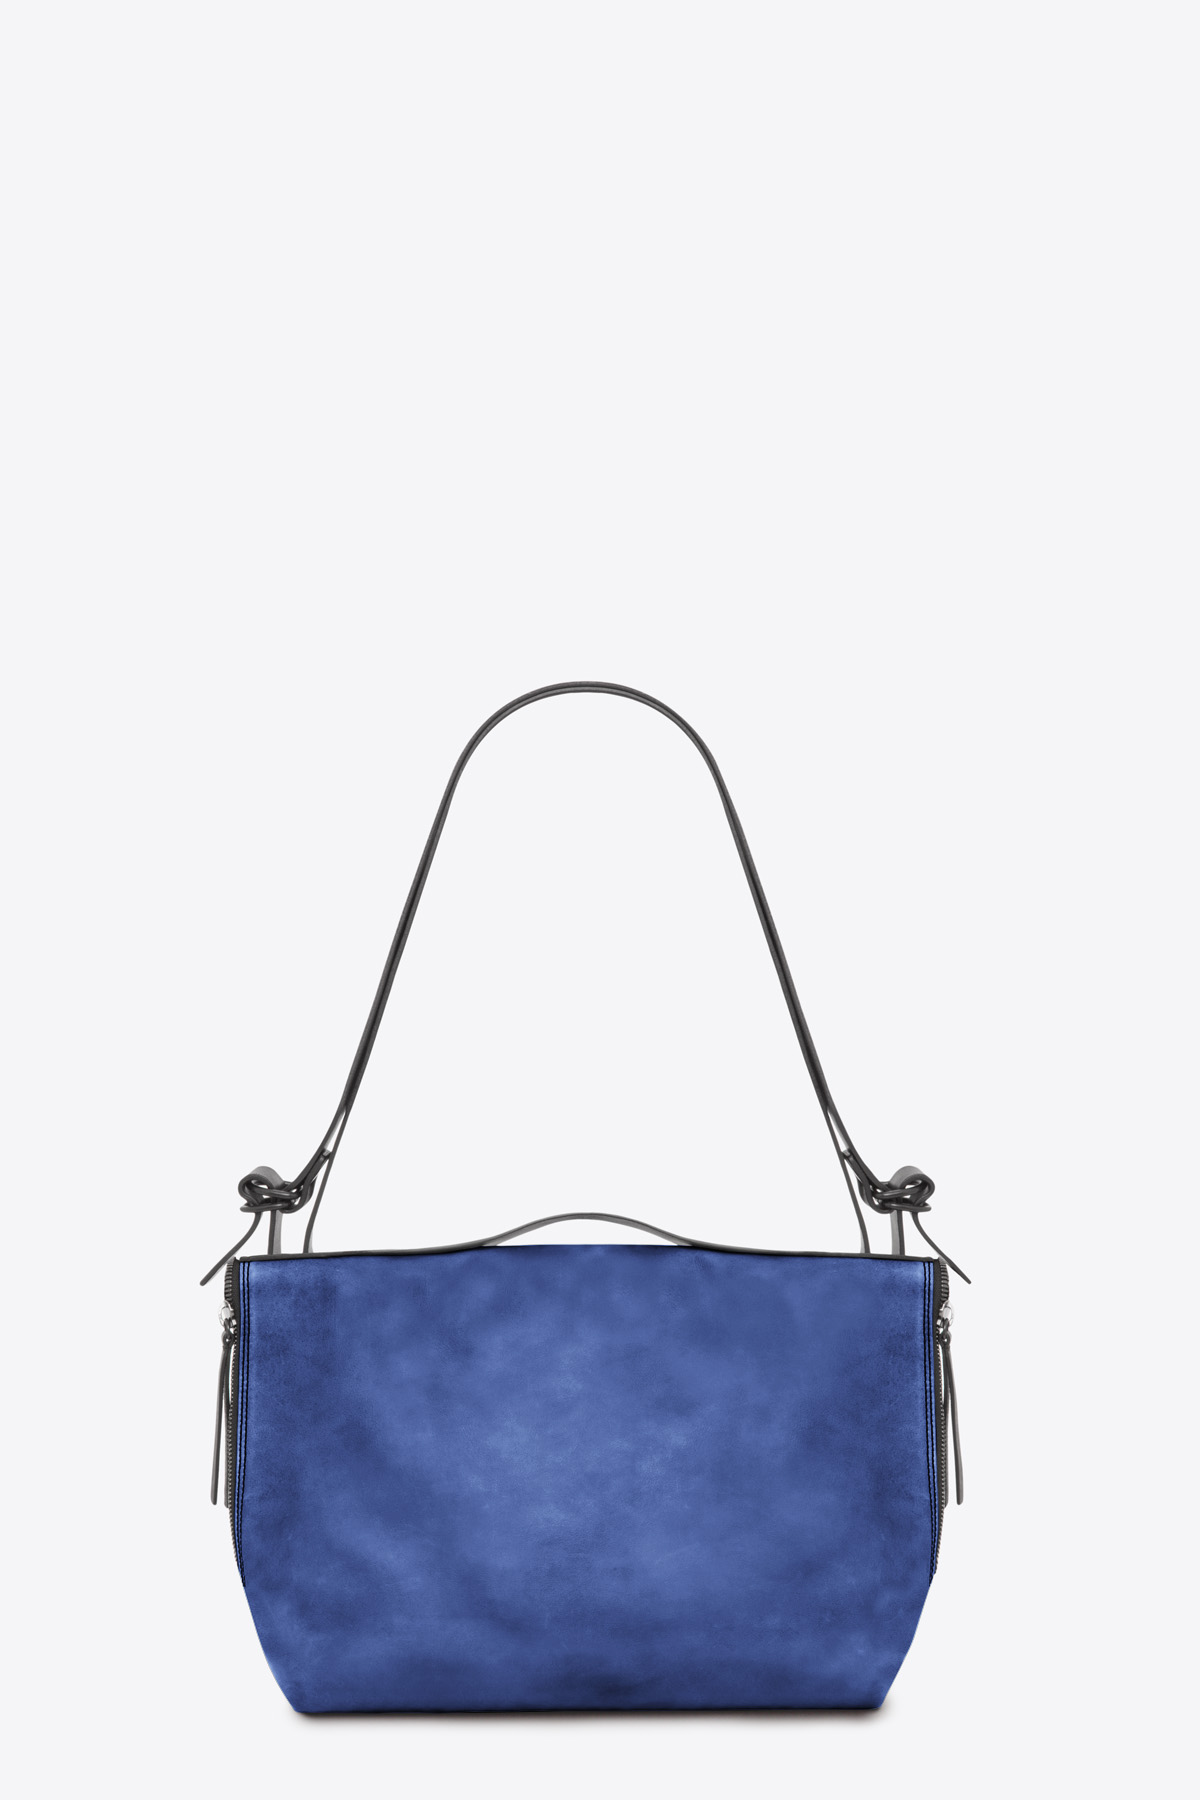 dclr008l-messenger-a20-royalblue-back